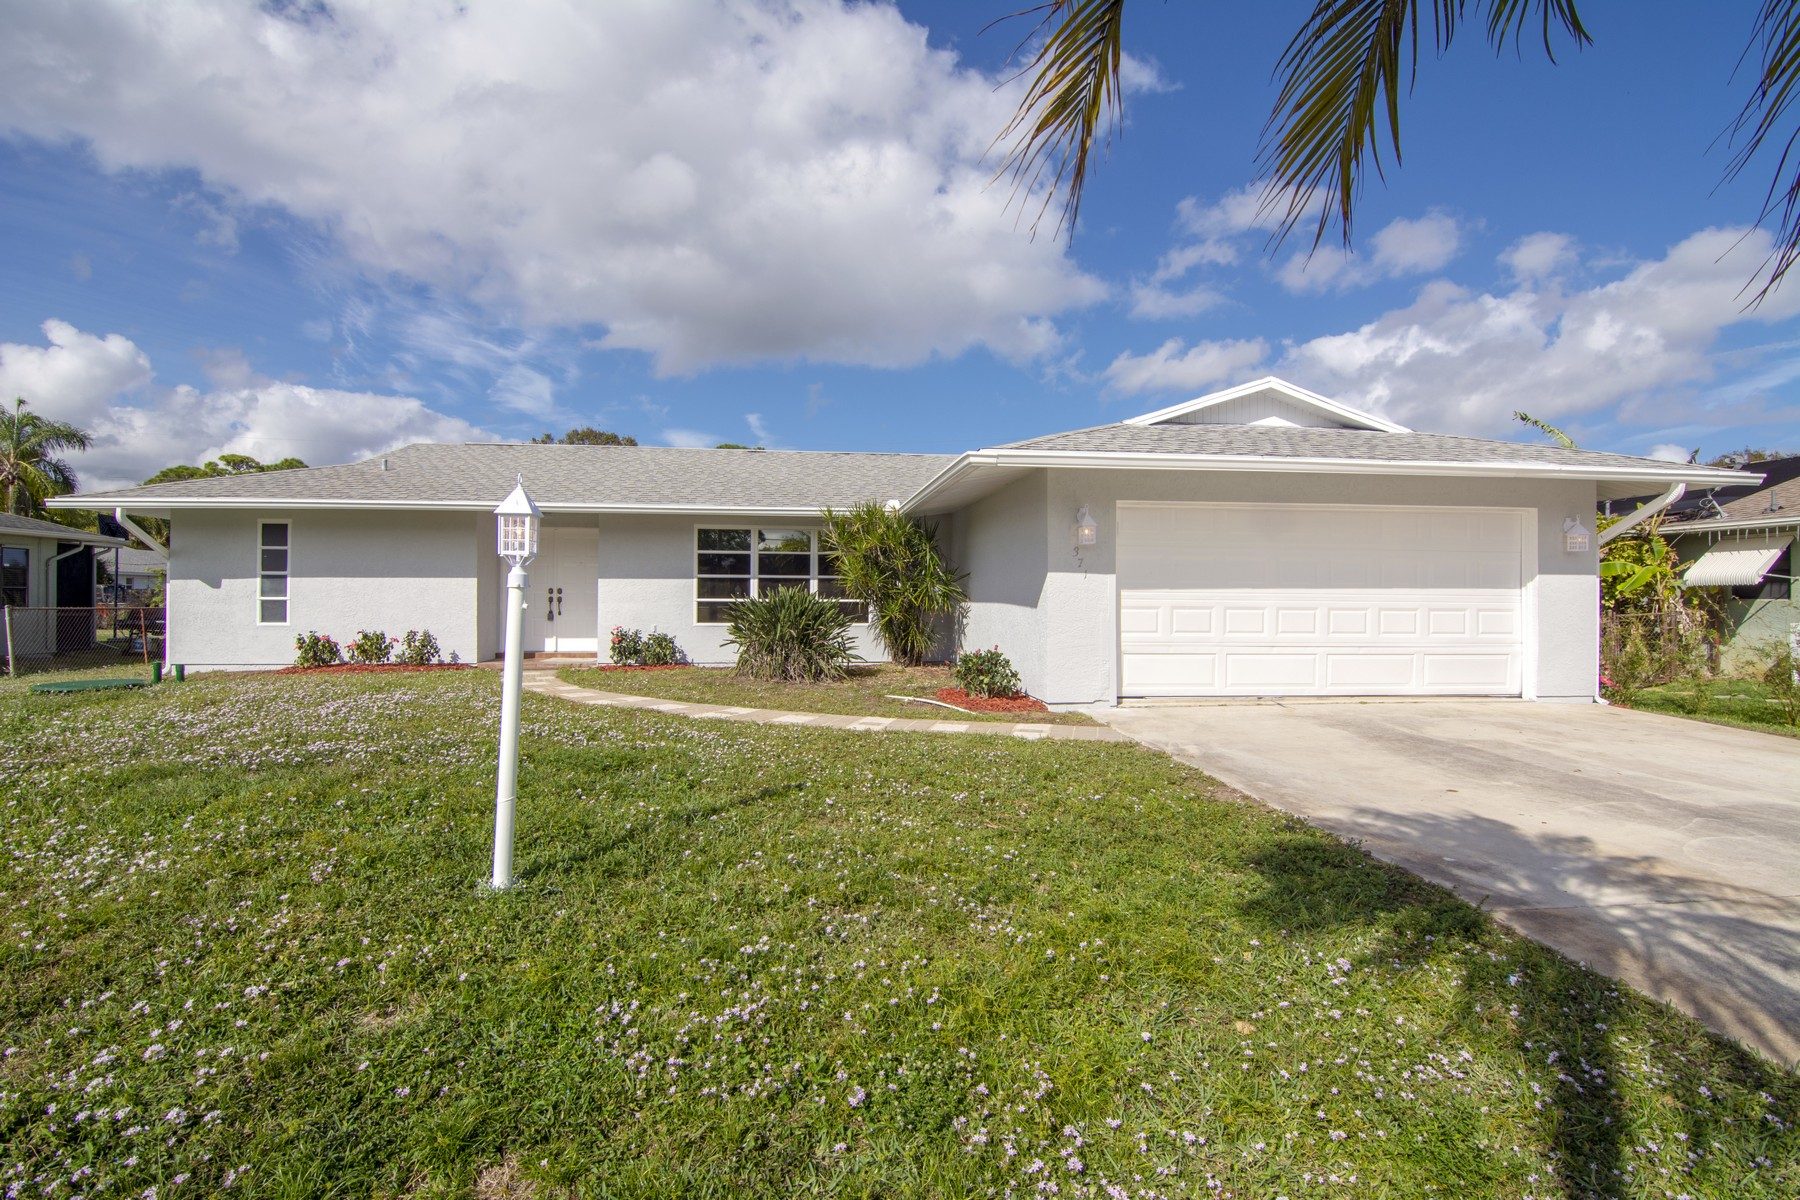 Single Family Home for Sale at Completely Renovated Home! 371 SE Crosspoint Drive Port St. Lucie, Florida 34983 United States